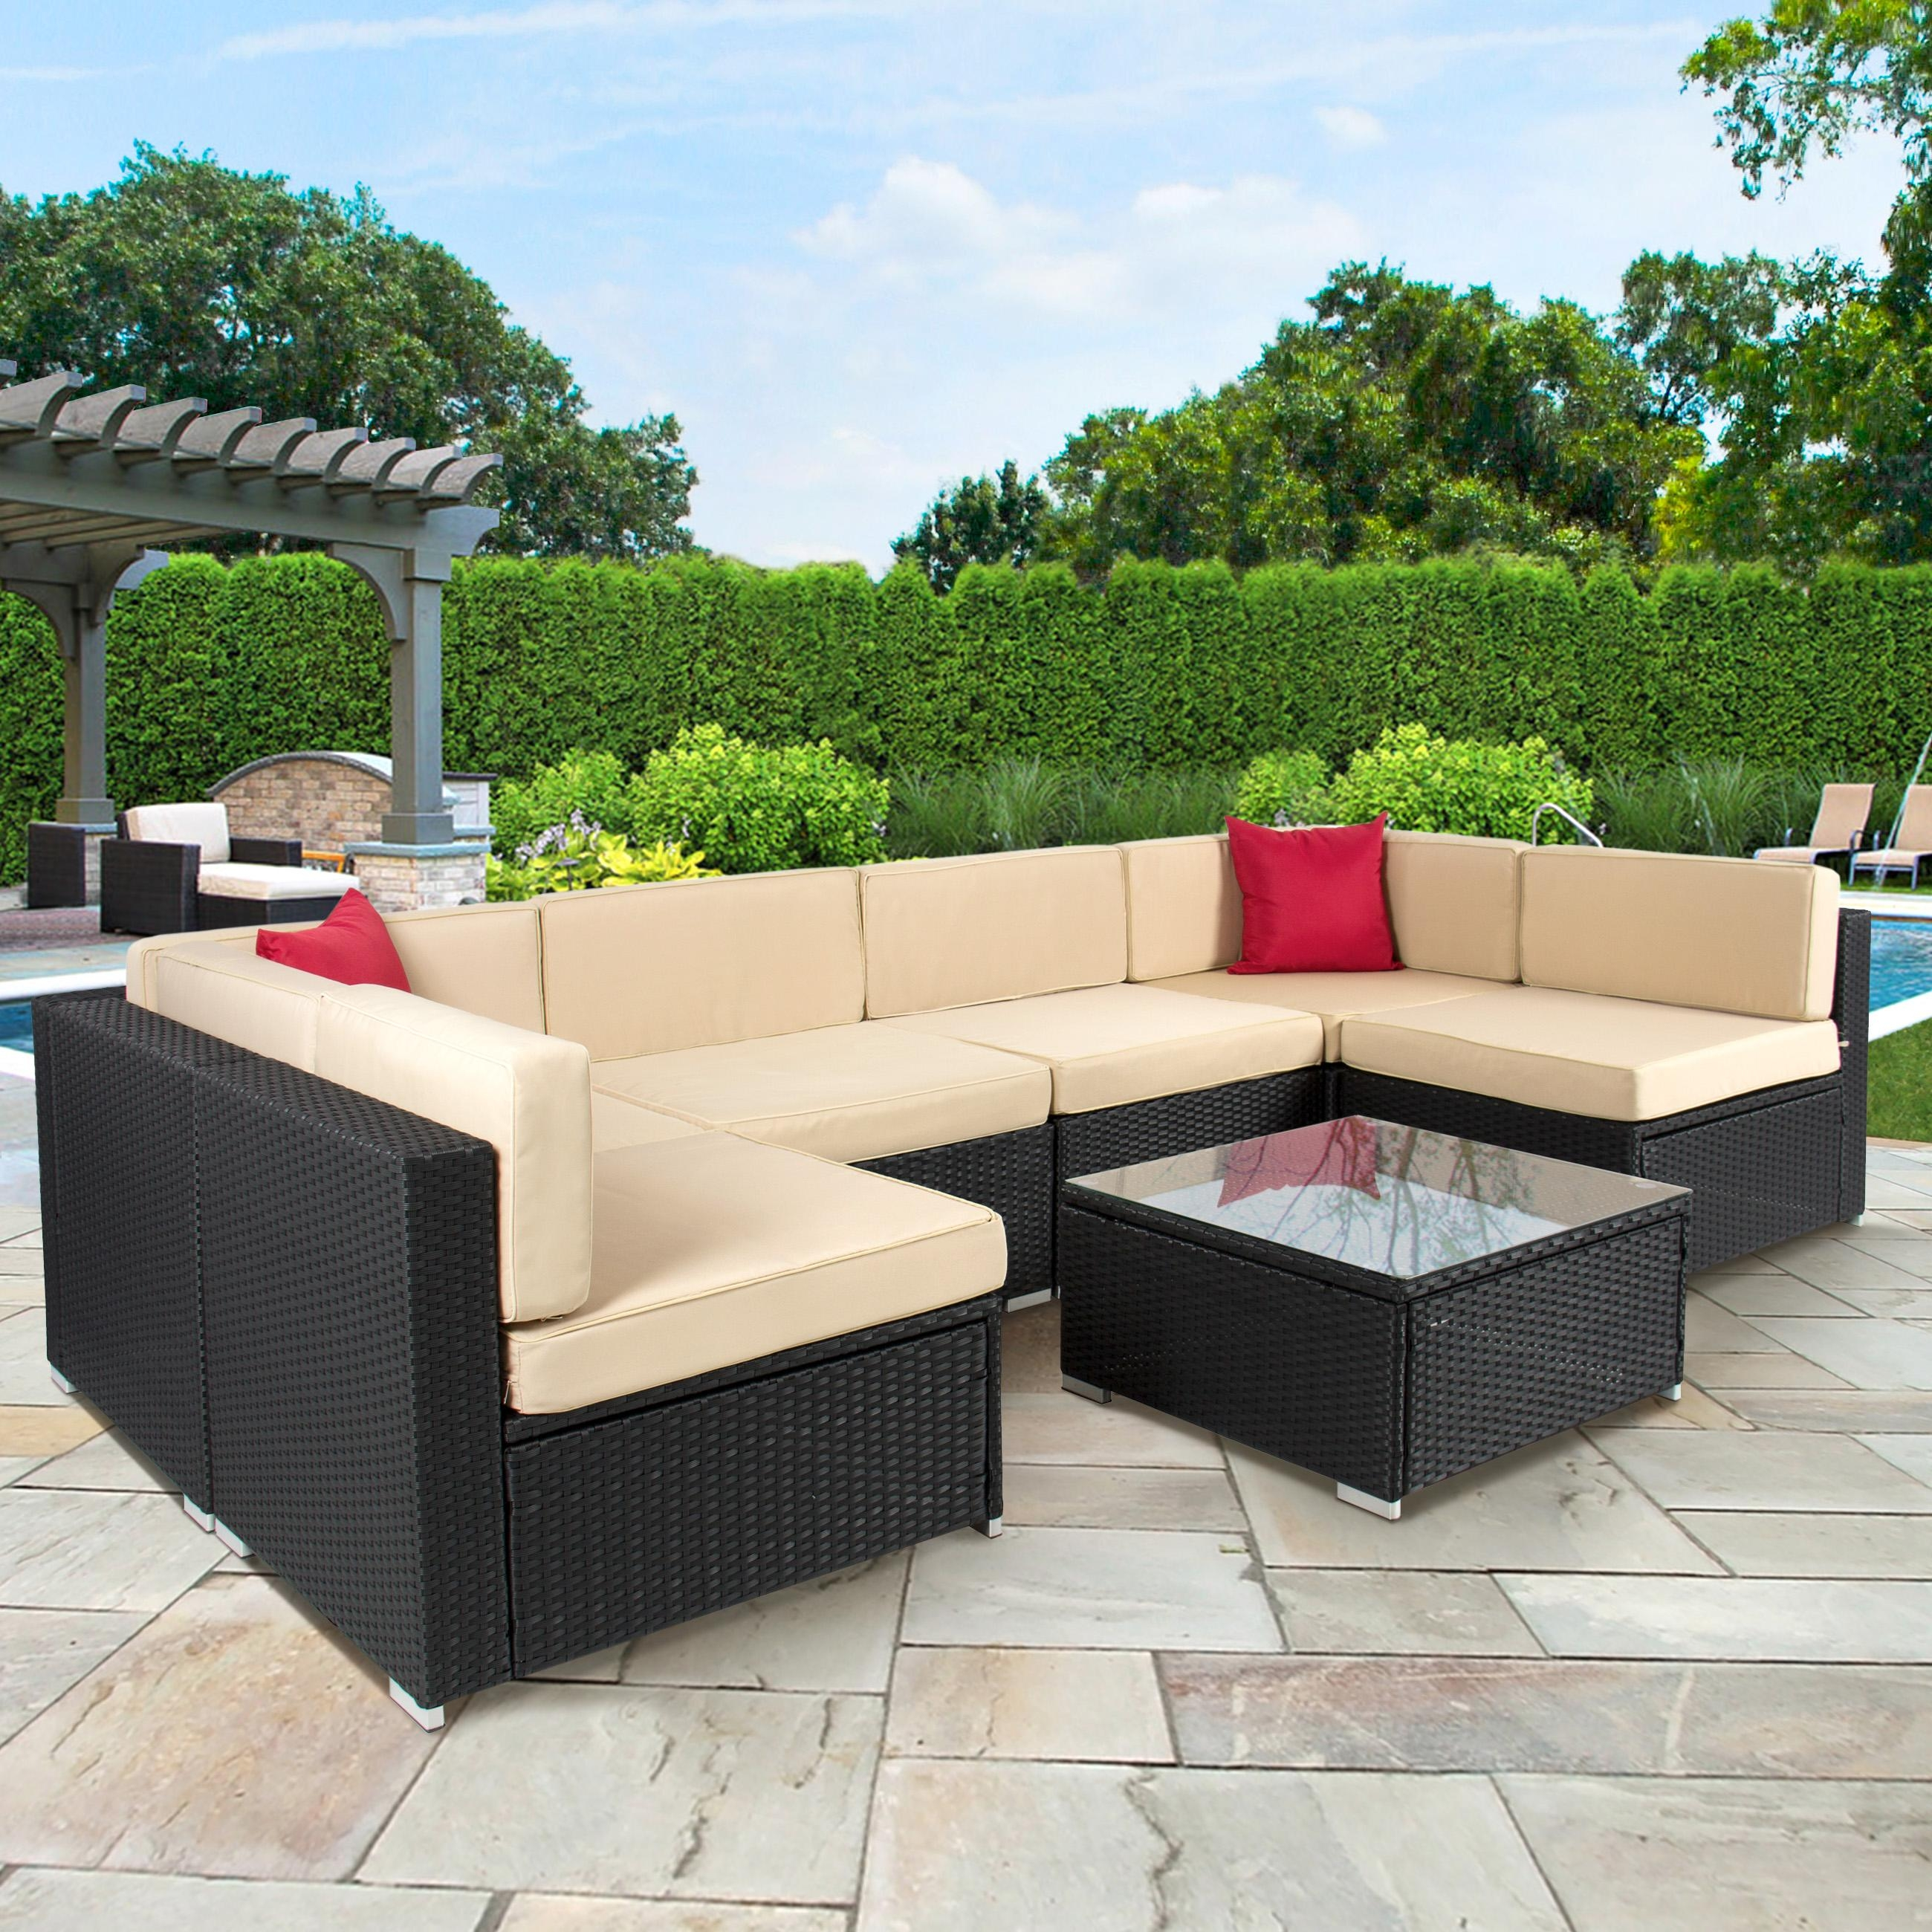 4Pc Outdoor Patio Garden Furniture Wicker Rattan Sofa Set Black within Outdoor Sofa Chairs